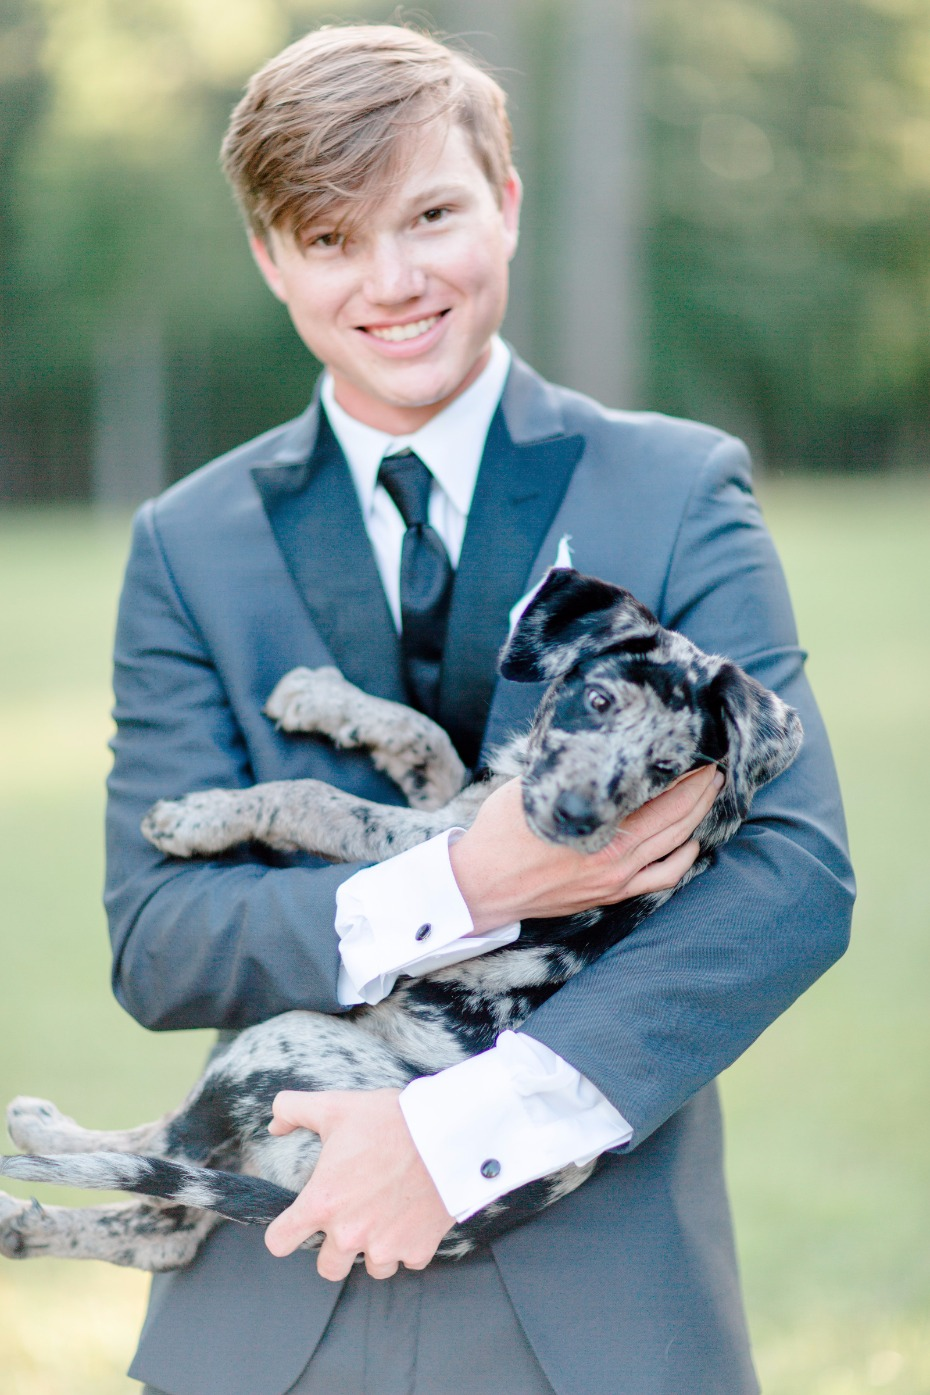 groom and his puppy